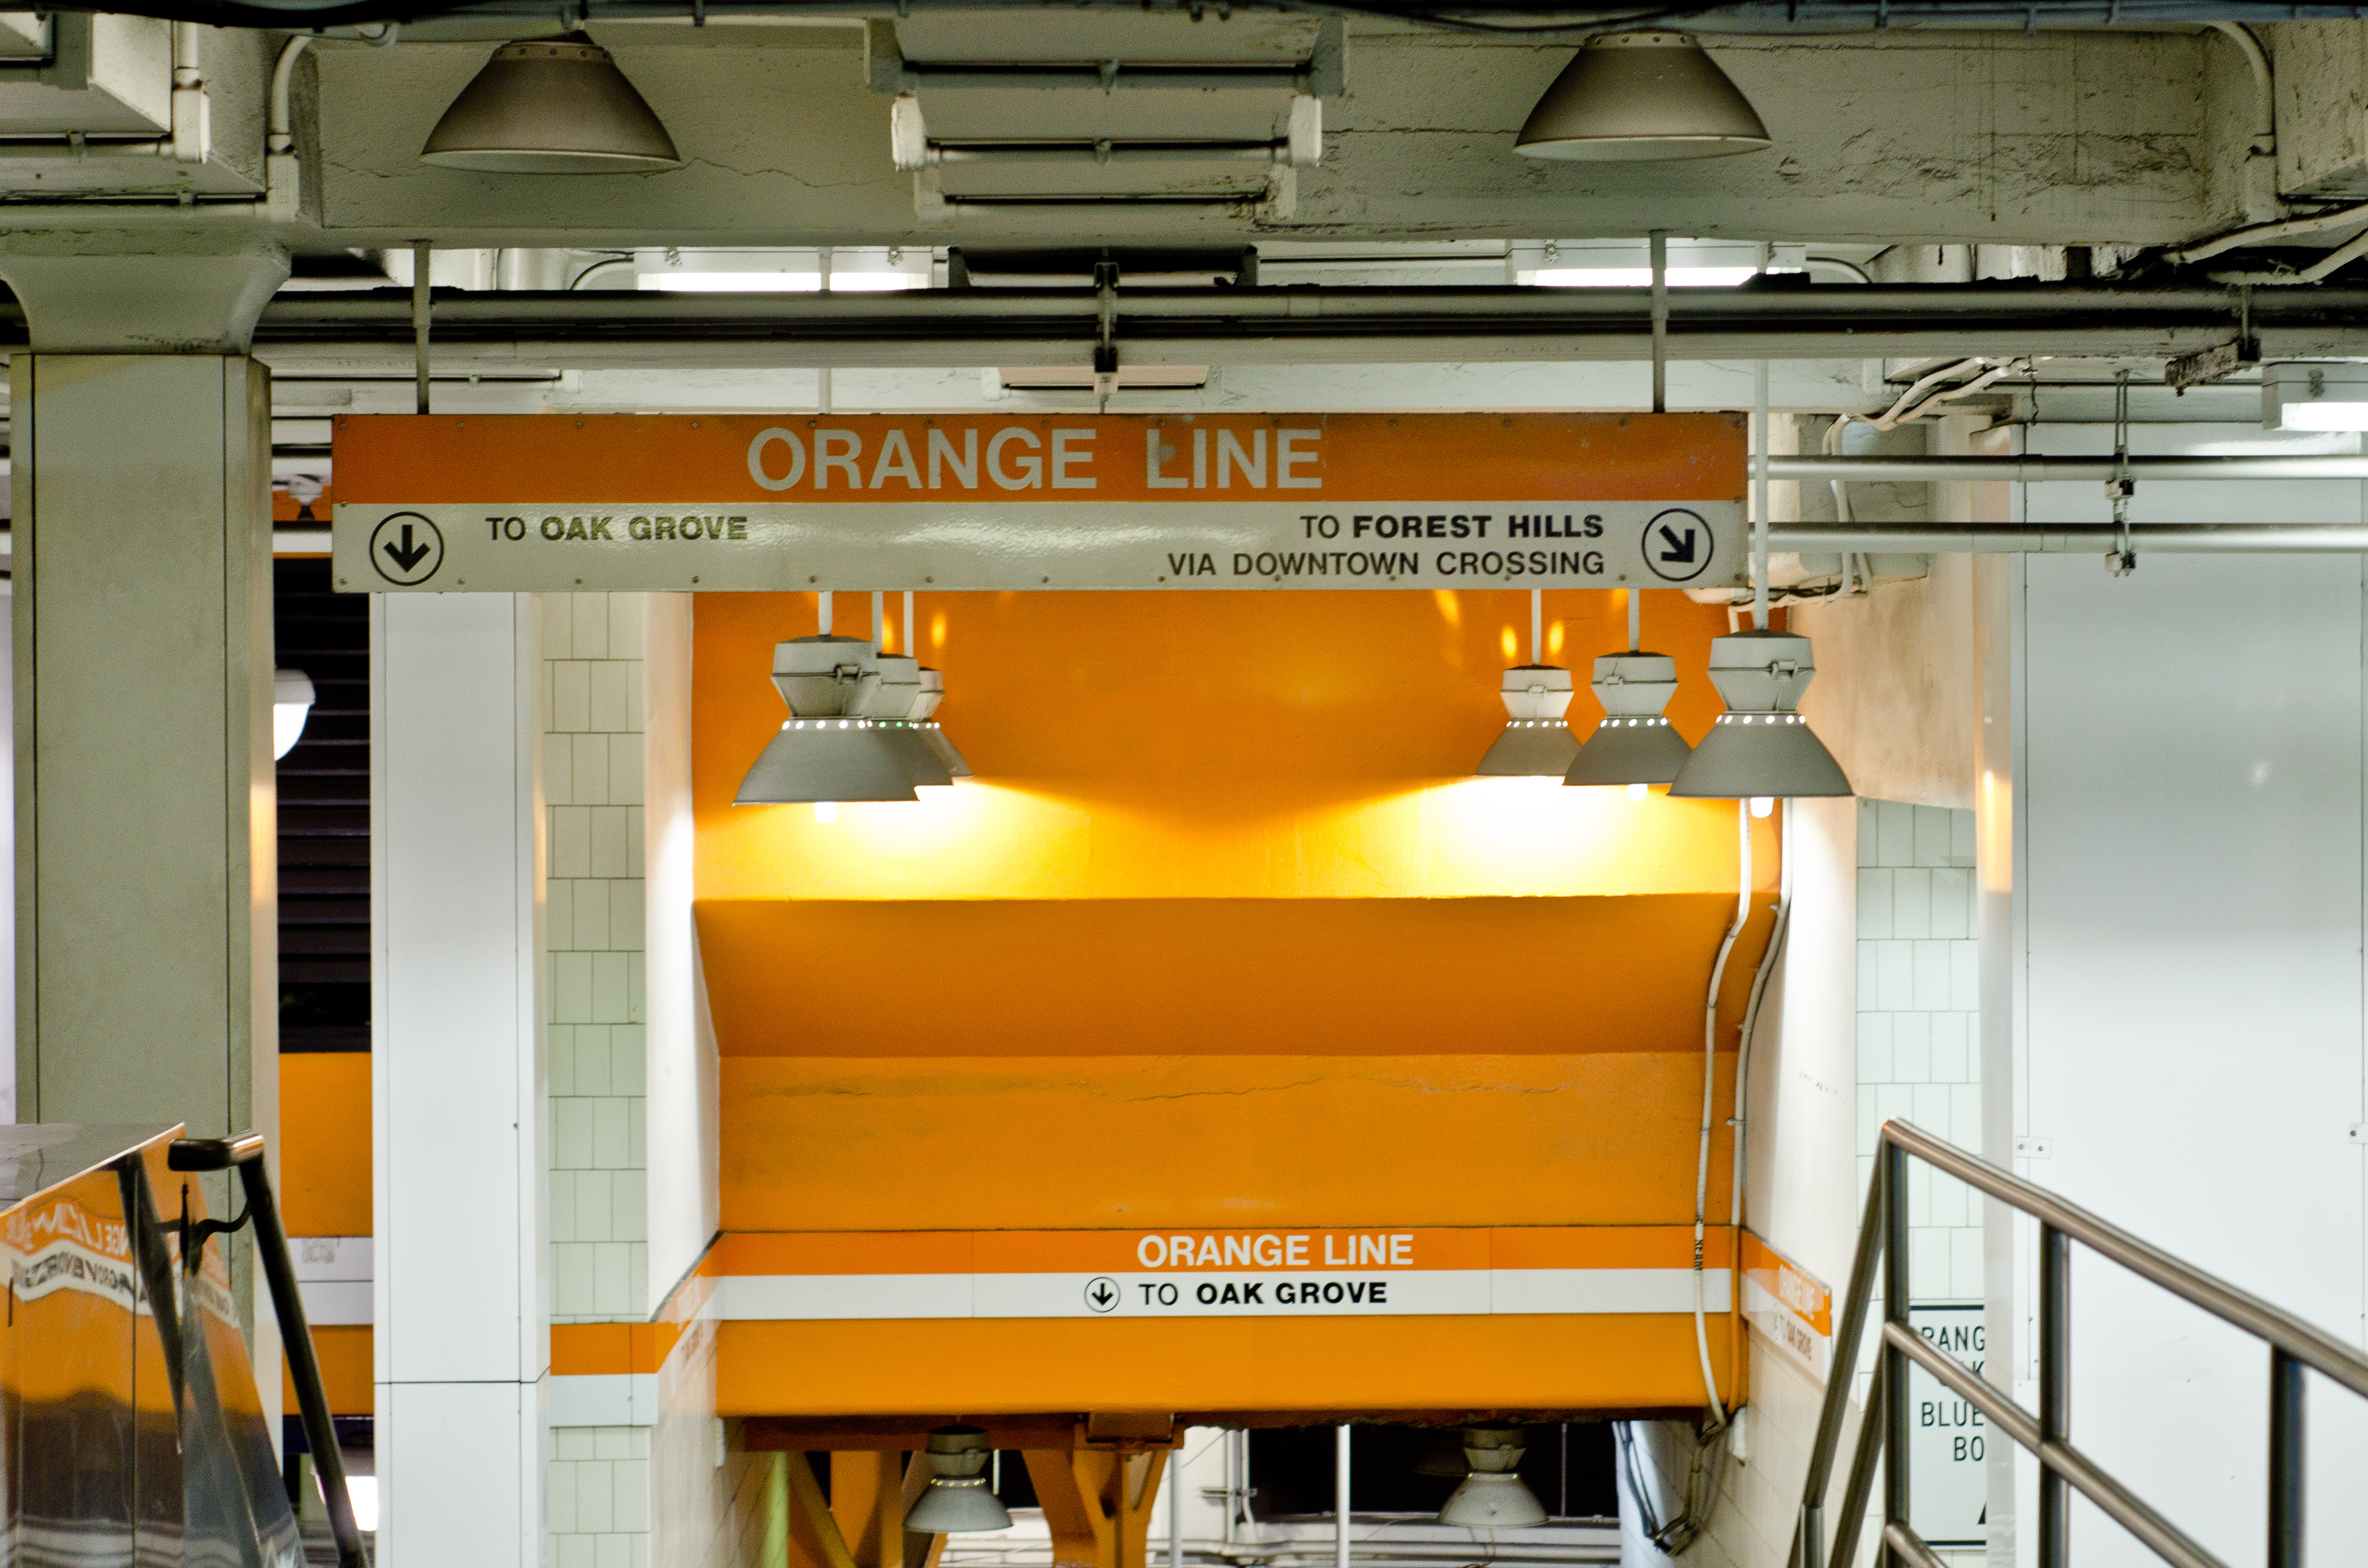 The interior of the Orange Line Station in Boston. The walls are orange and white. There is a staircase.